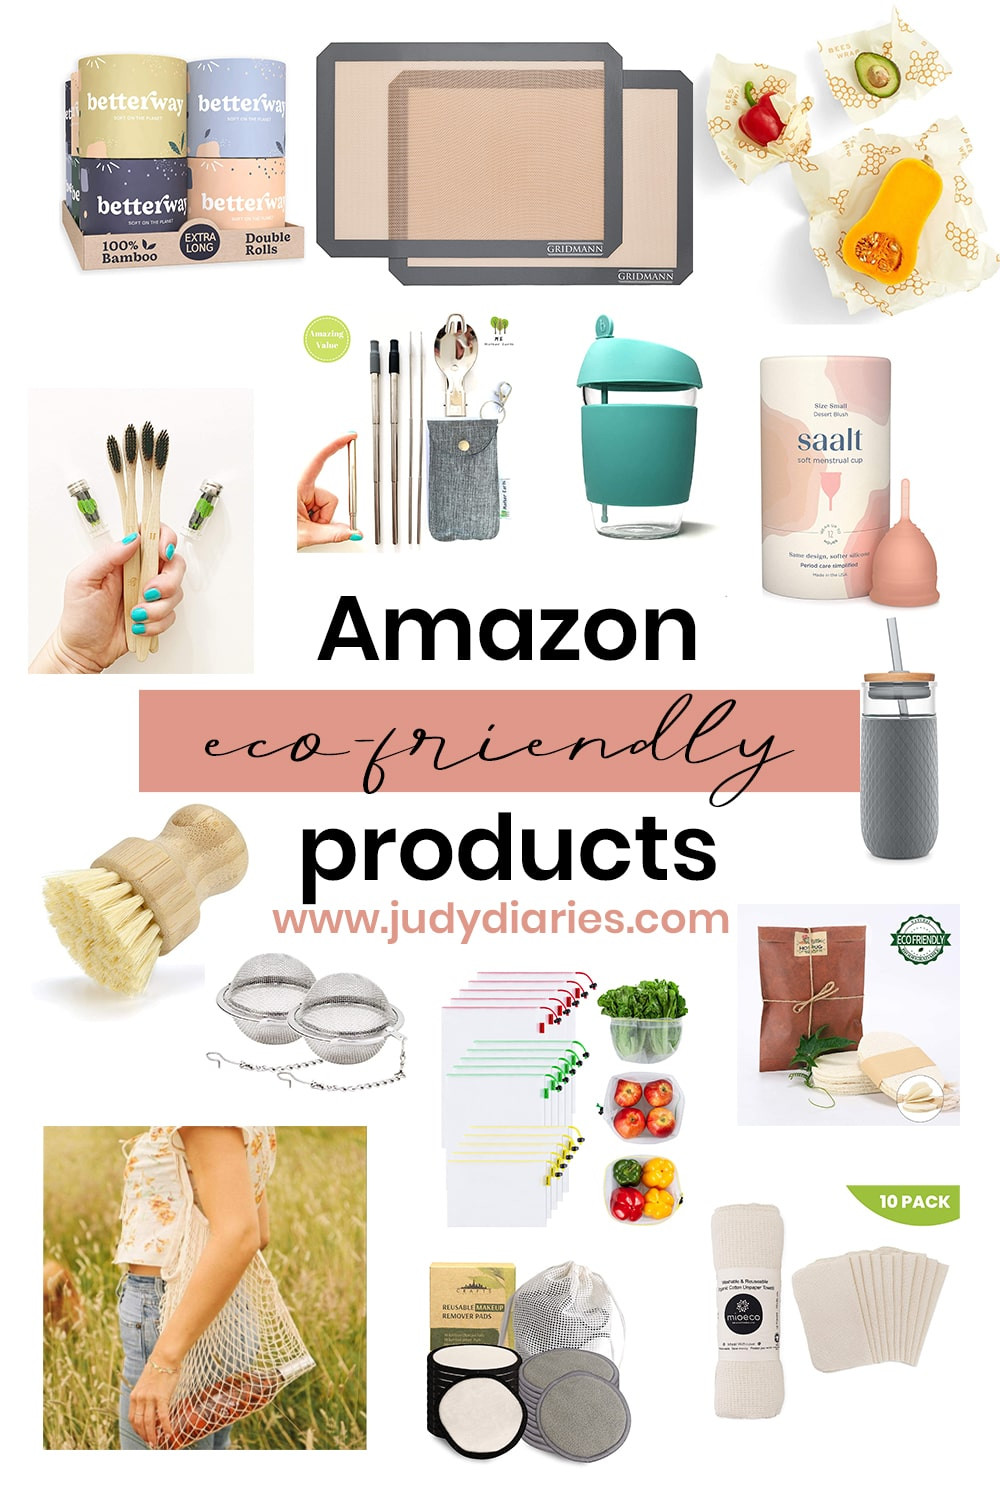 Eco-friendly and zero waste products from Amazon